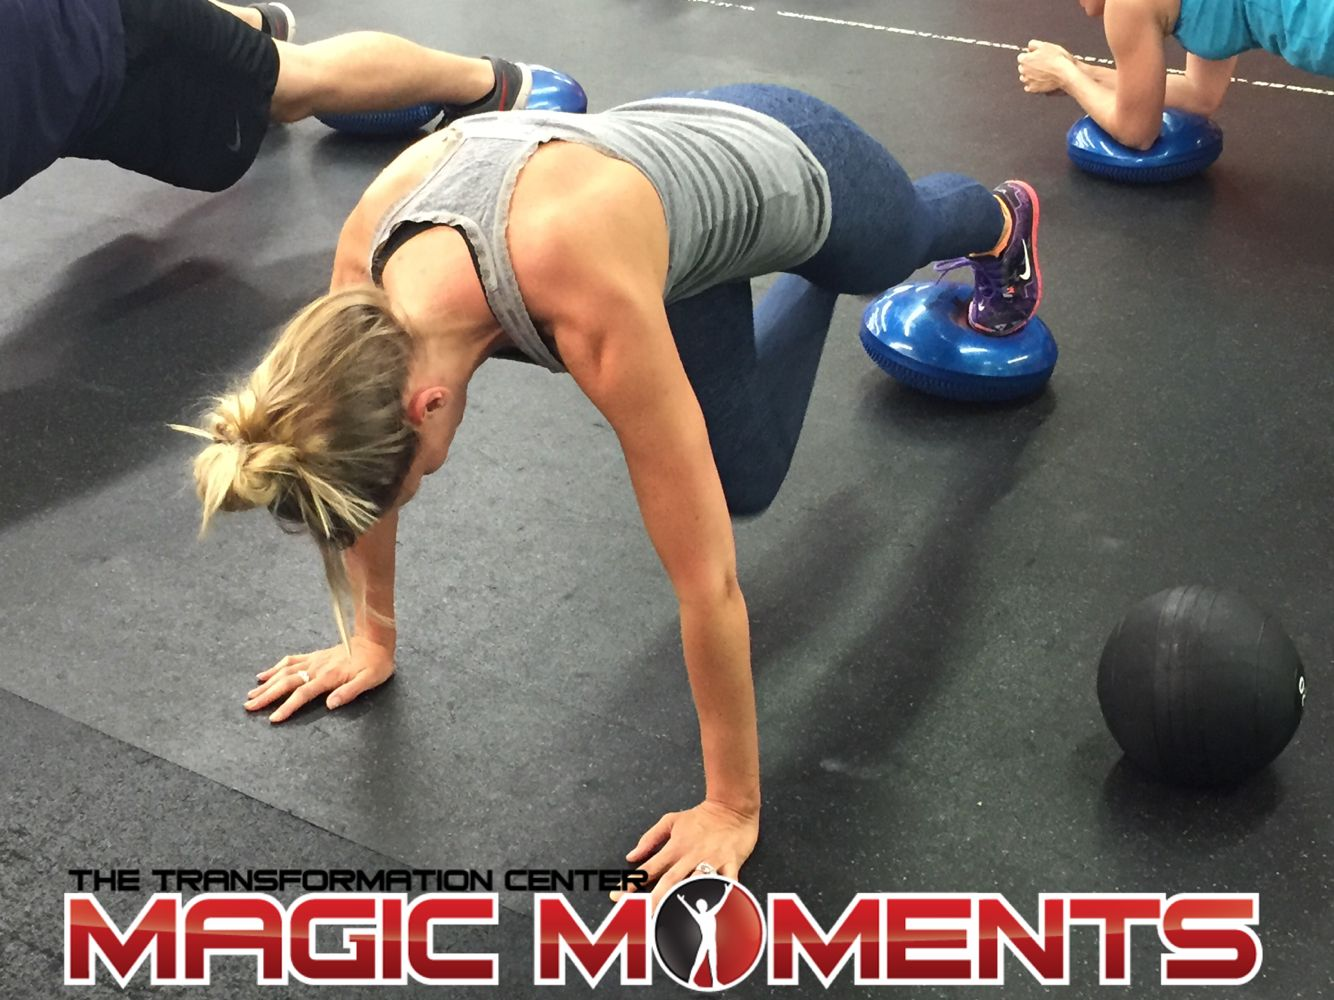 Here is that next level for mountain climbers that you've been looking for. Enjoy! #MagicMomentsBS